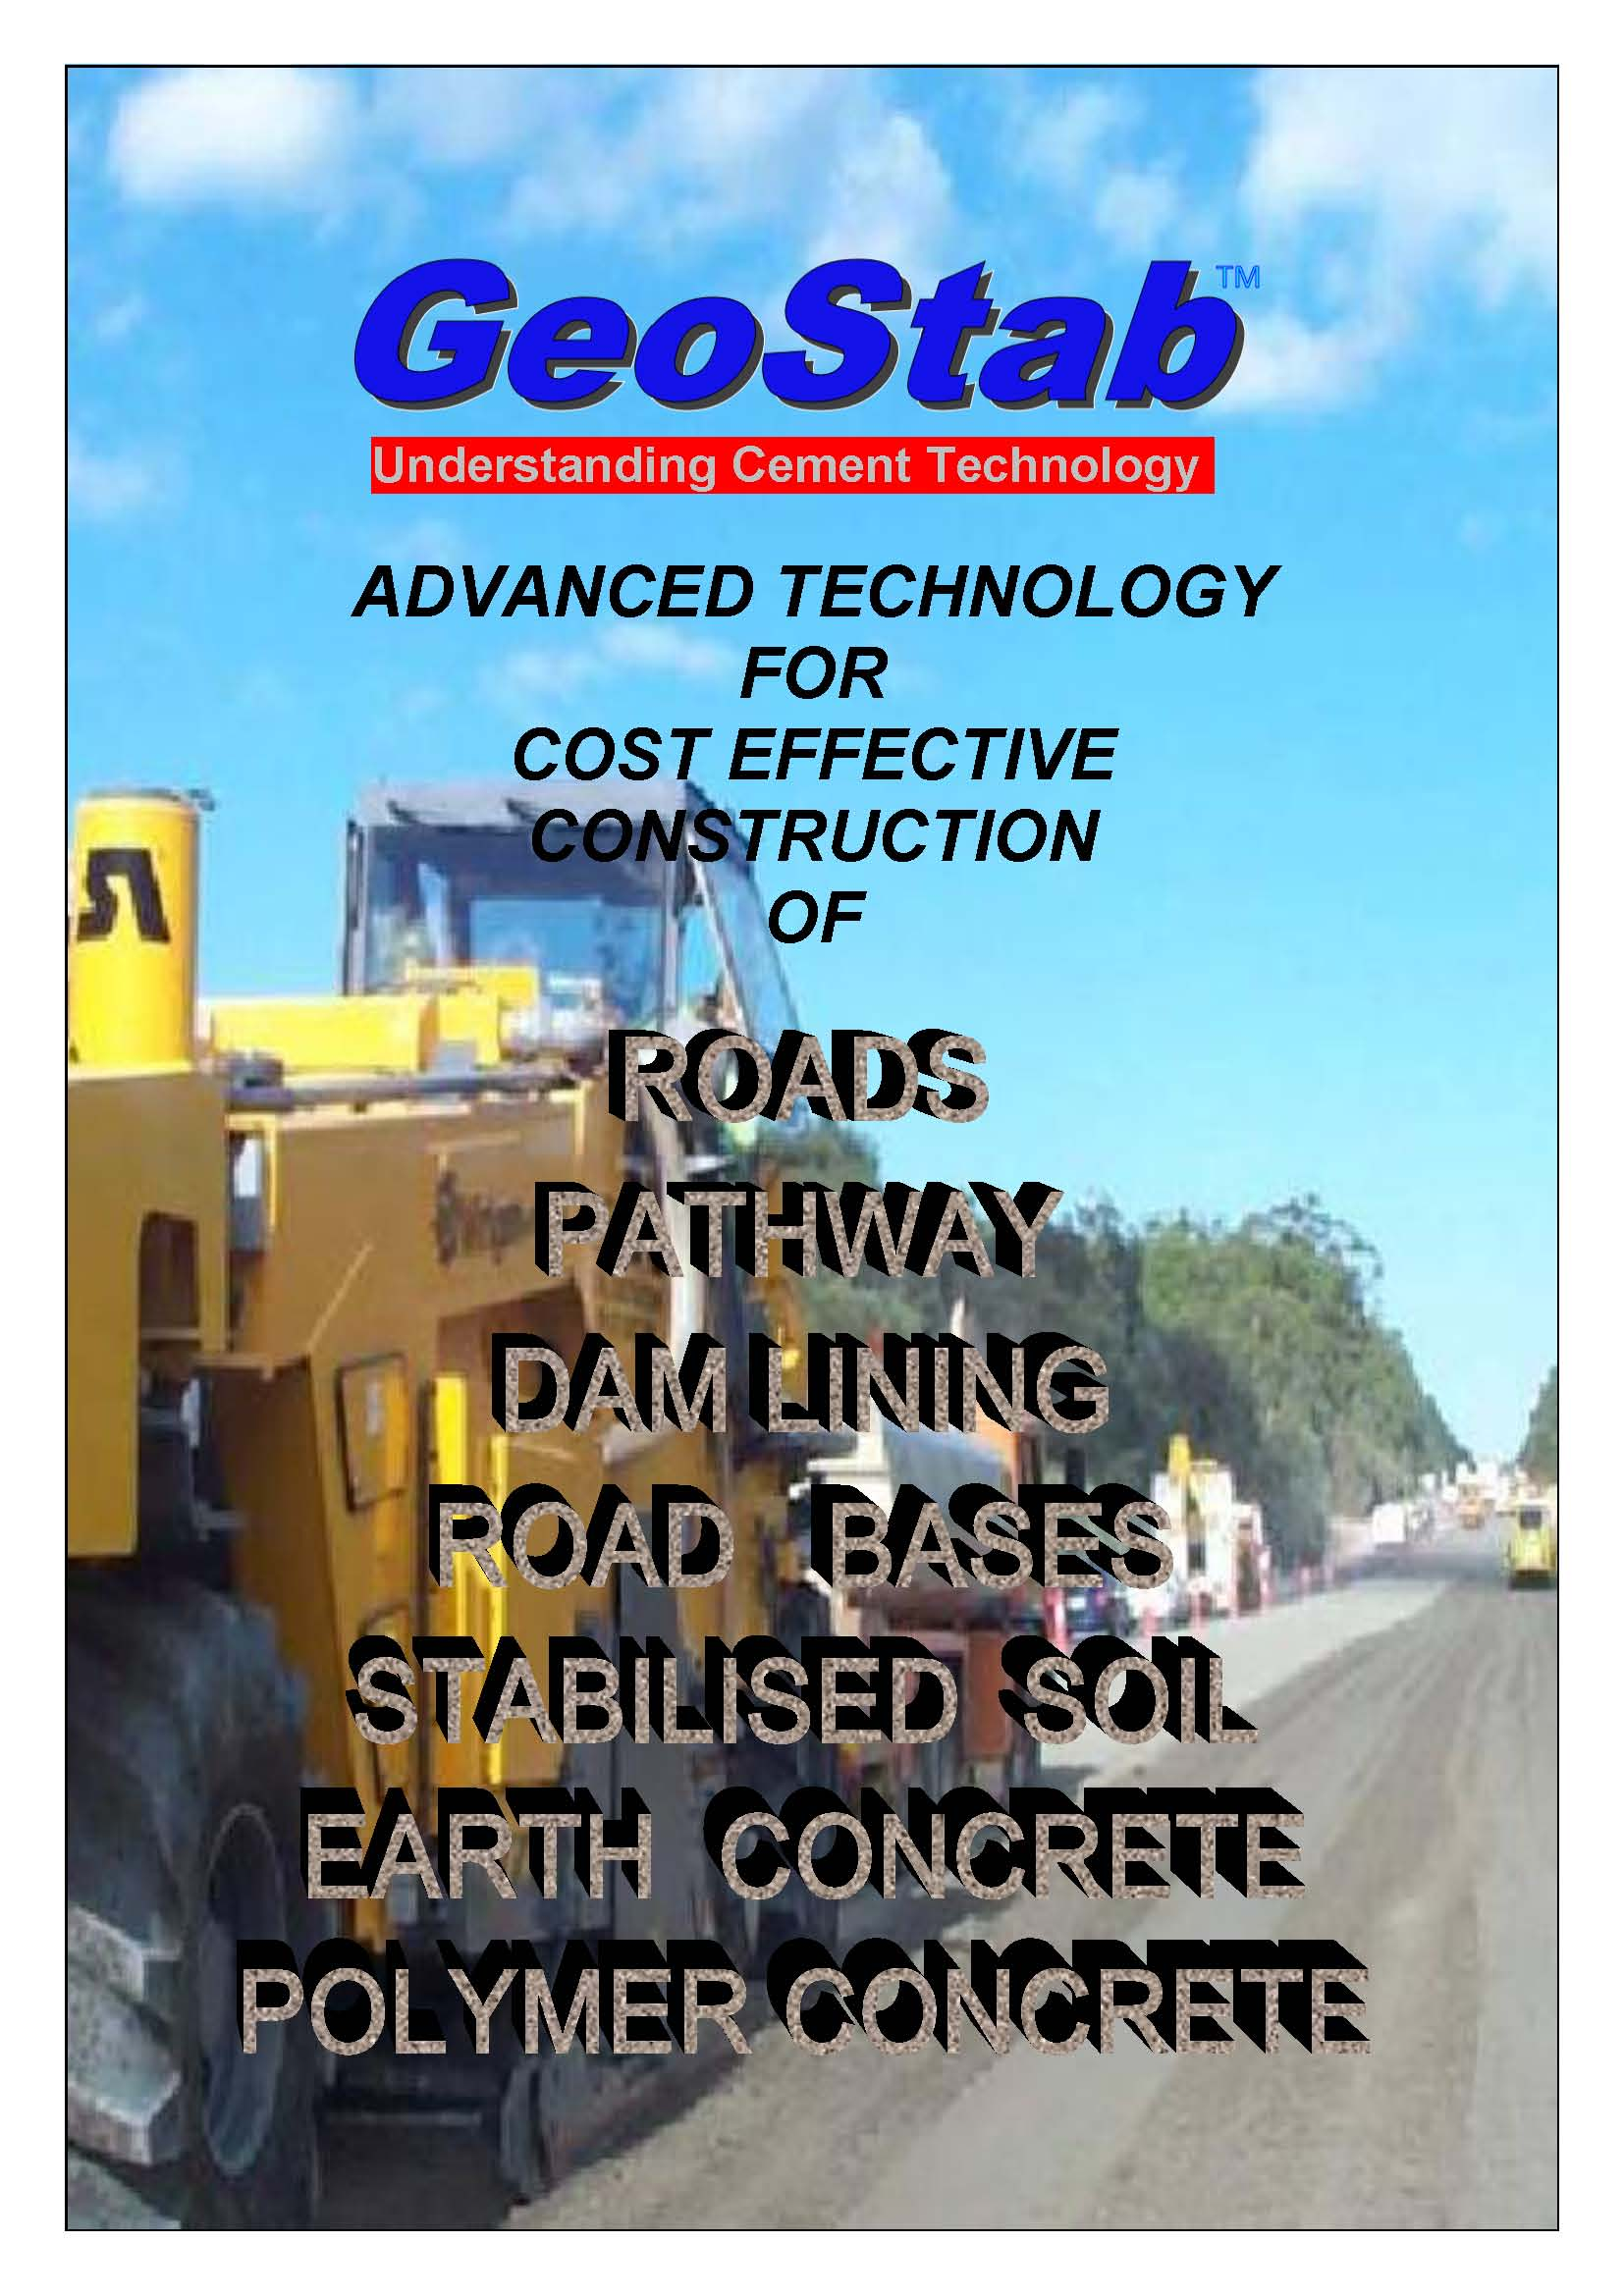 GeoStab - Advanced Technology for Cost Effective Manufacture hq_Page_01.jpg